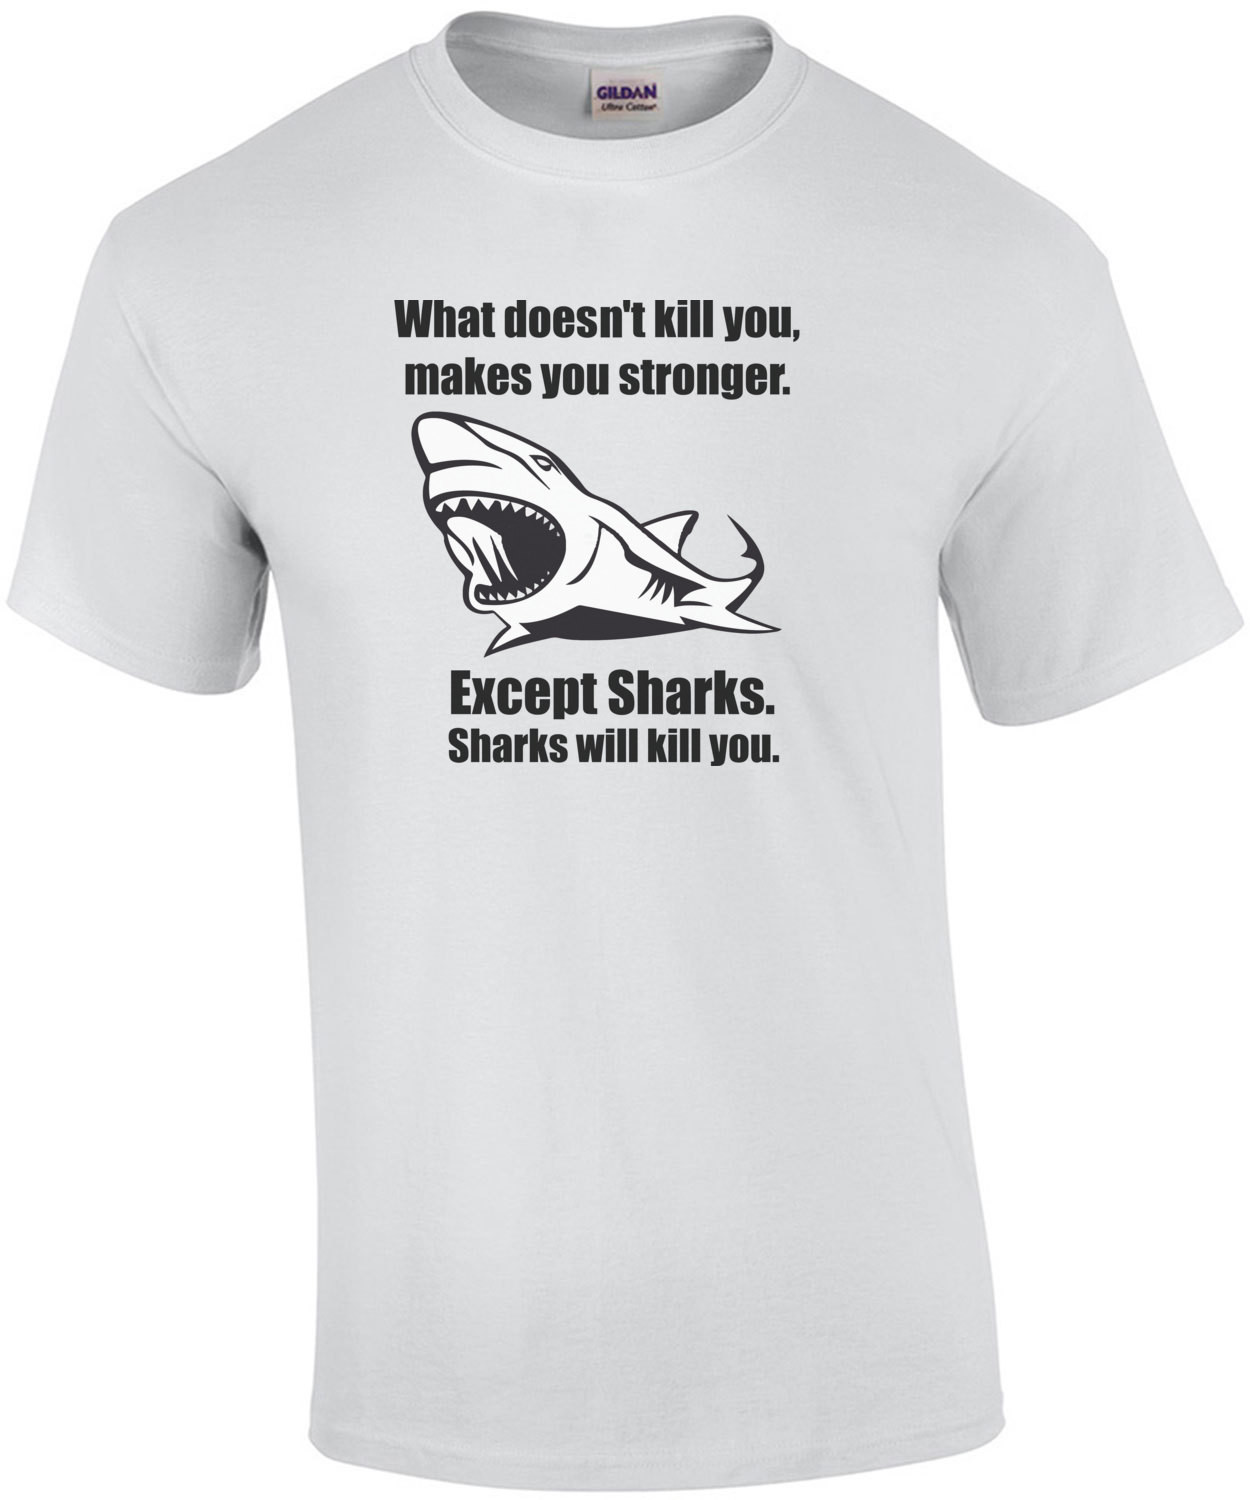 What doesn't kill you makes you stronger. Except for sharks. Funny T-Shirt